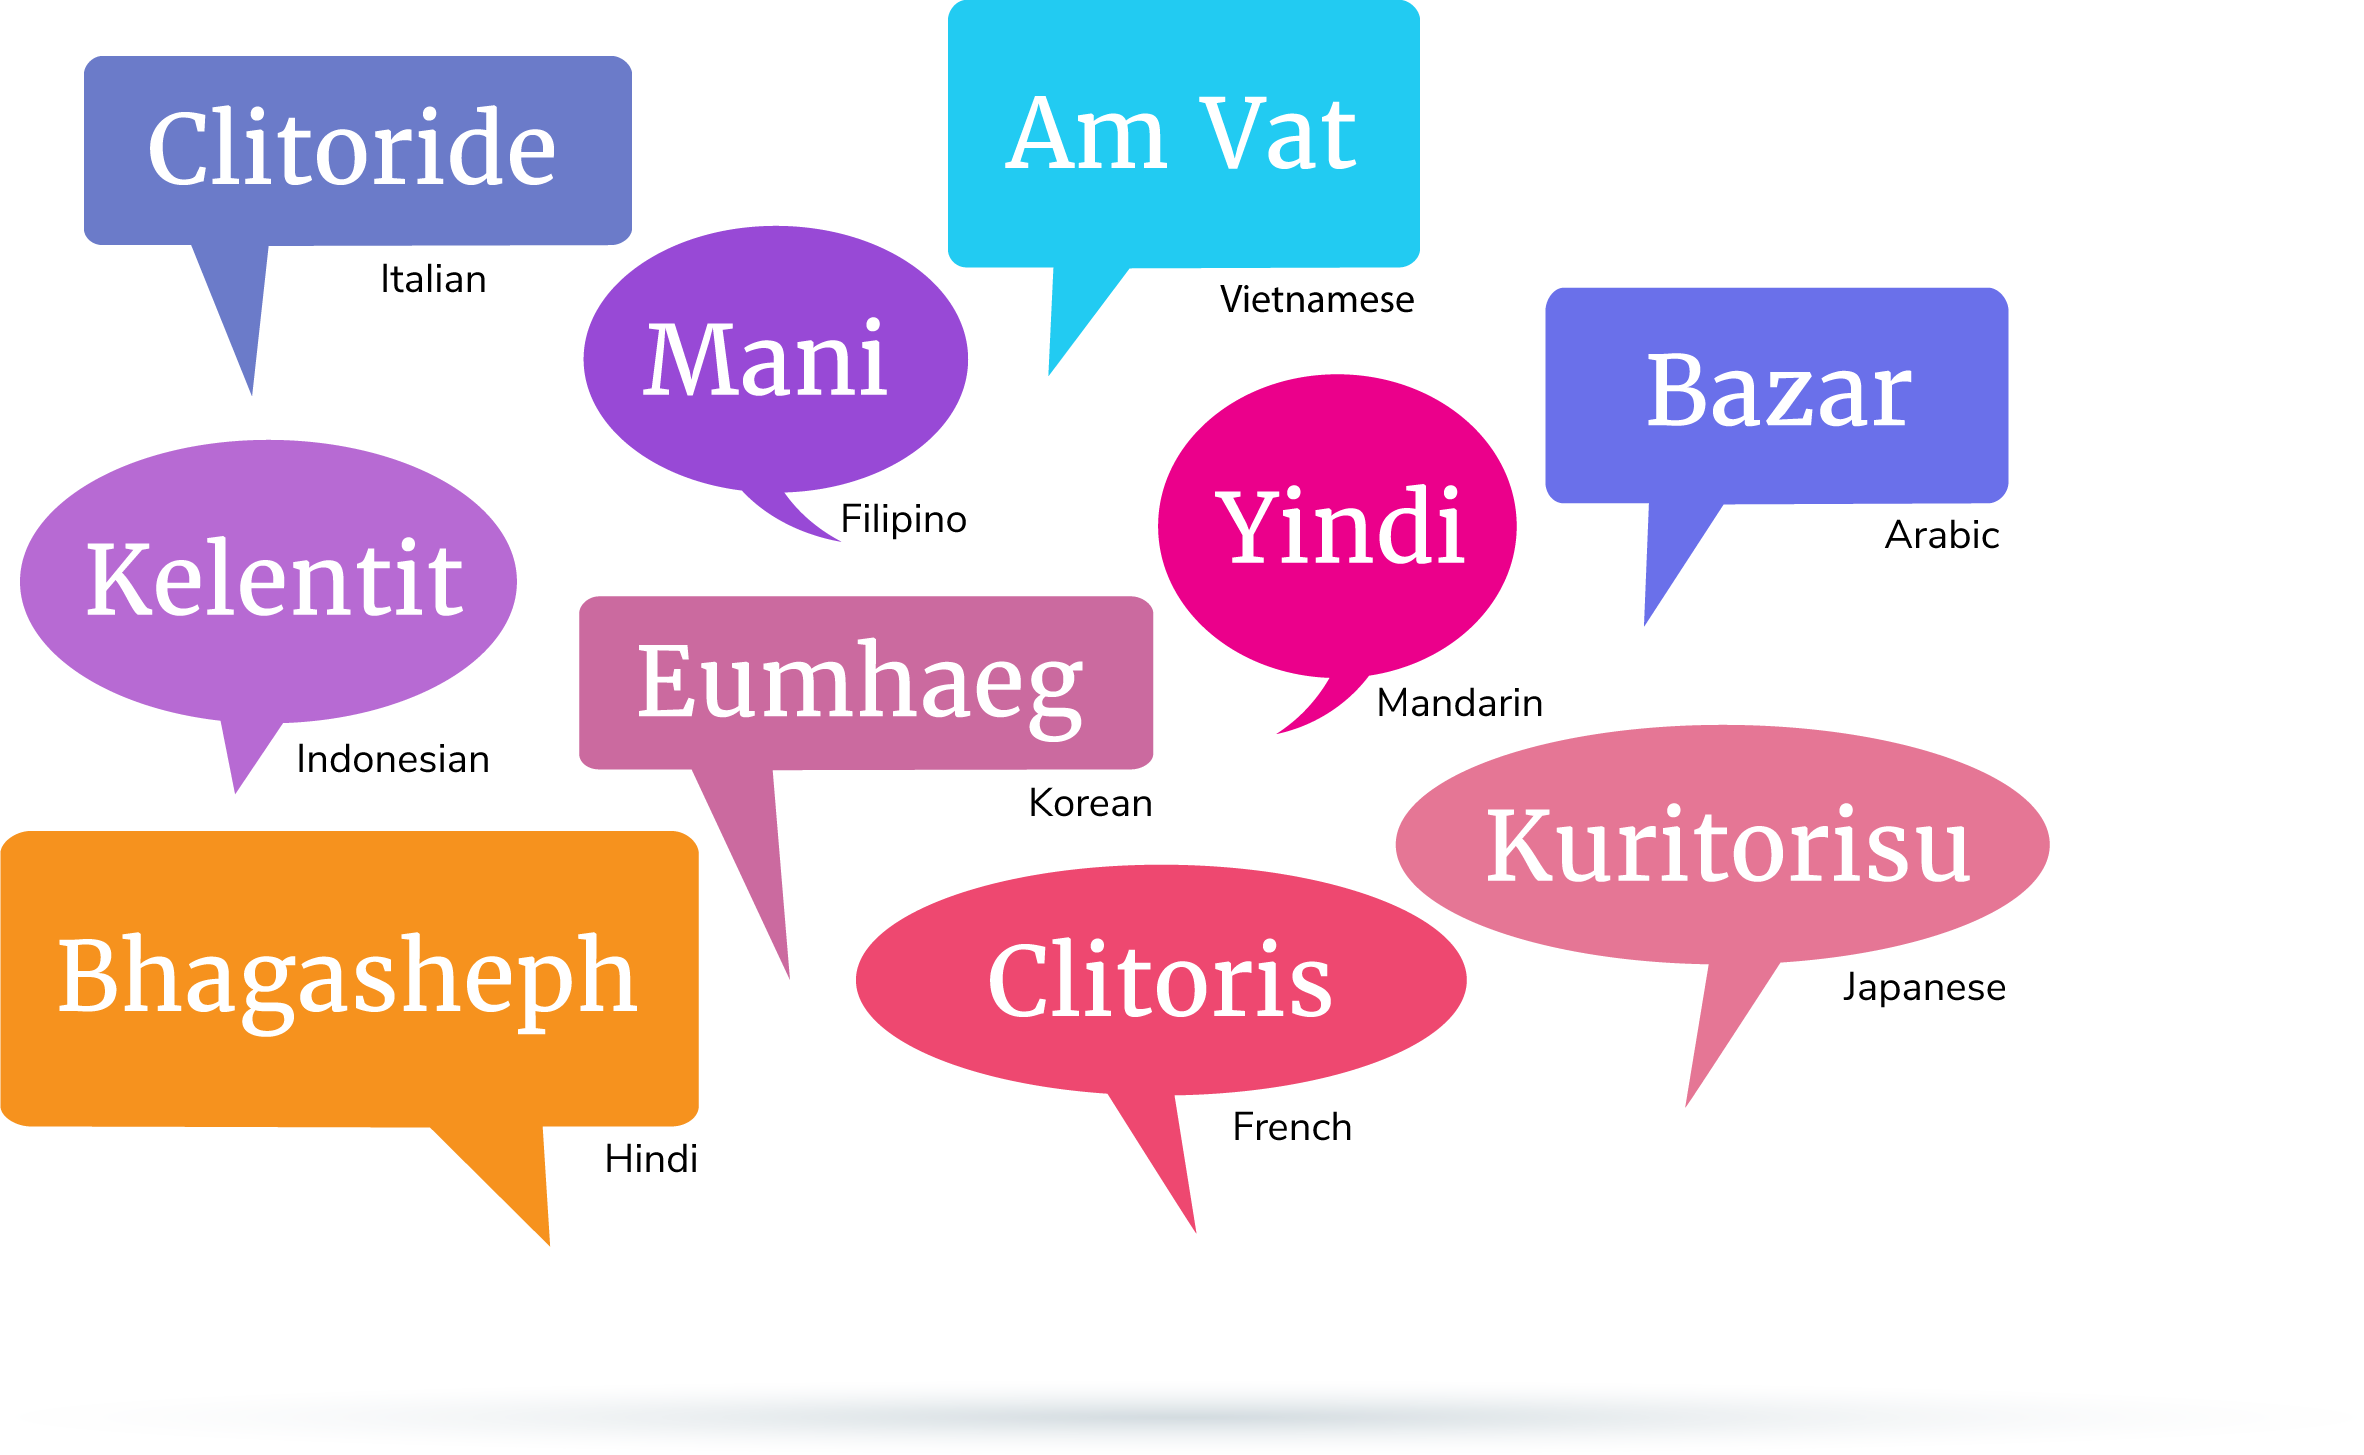 how to say clitoris in different languages